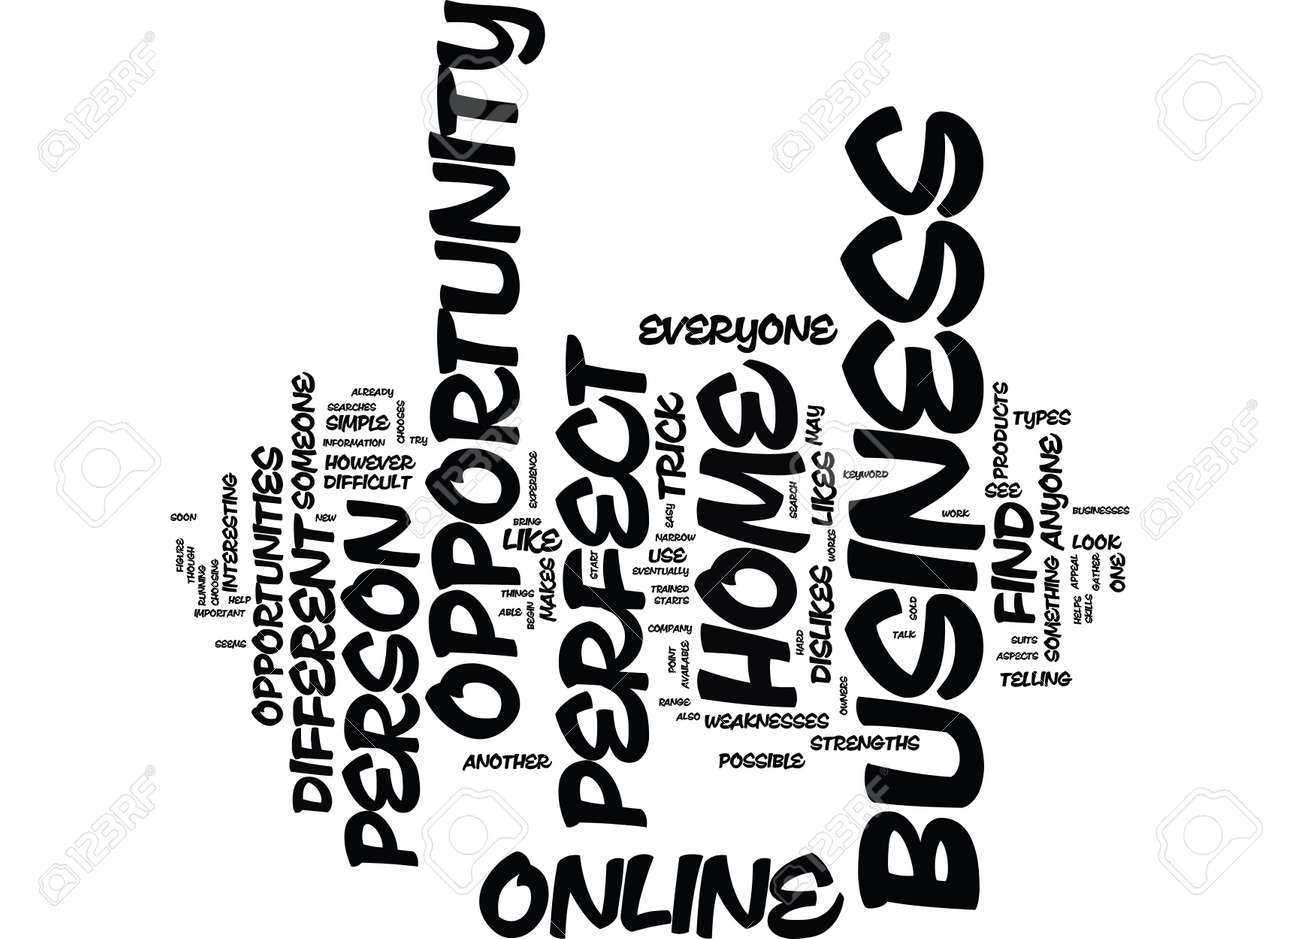 THE PERFECT HOME BUSINESS OPPORTUNITY ONLINE Text Background ...